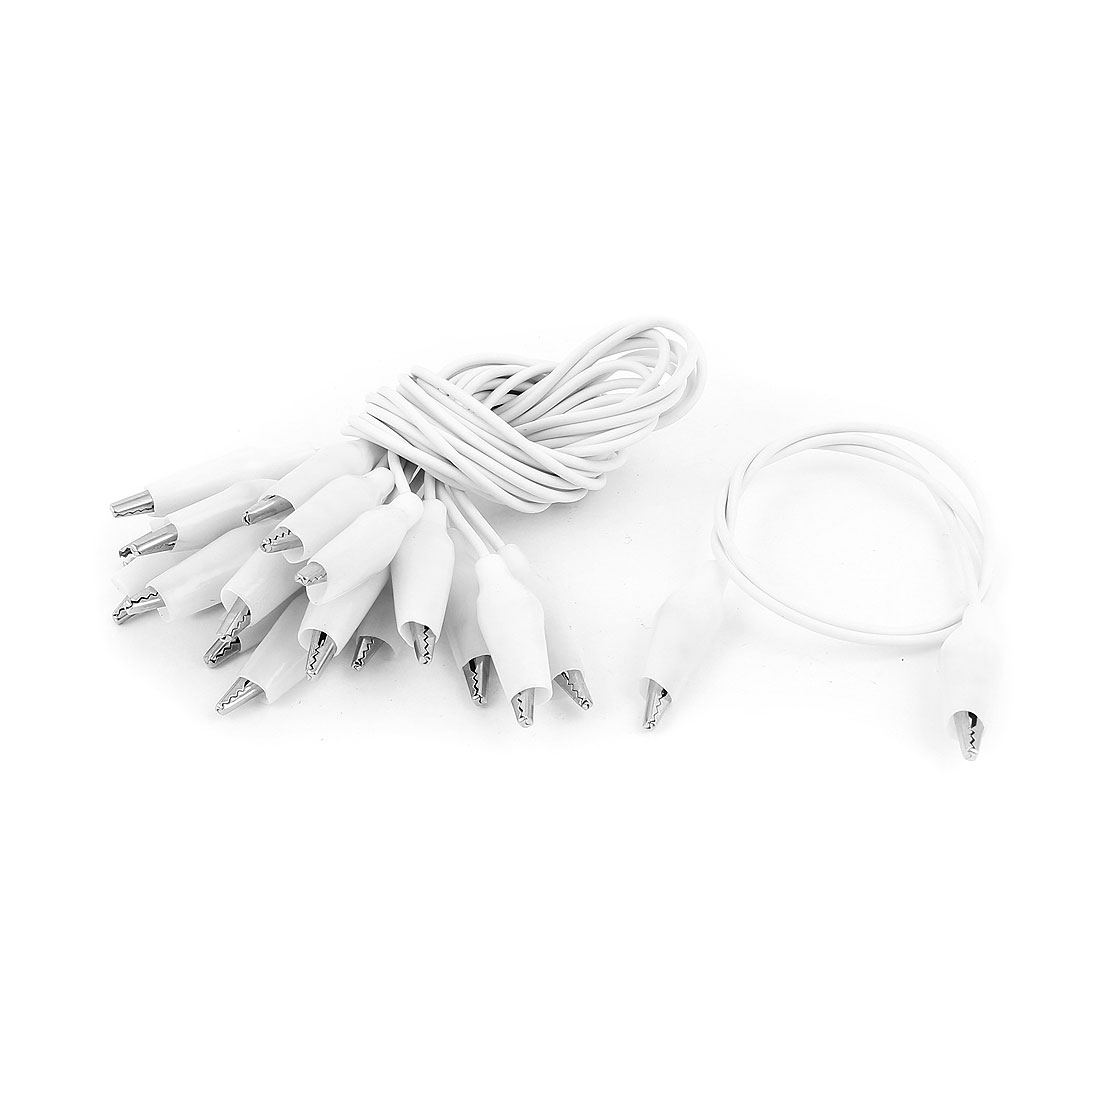 Double-ended Alligator Clip Test Lead Electrical Testing Tool White 10pcs